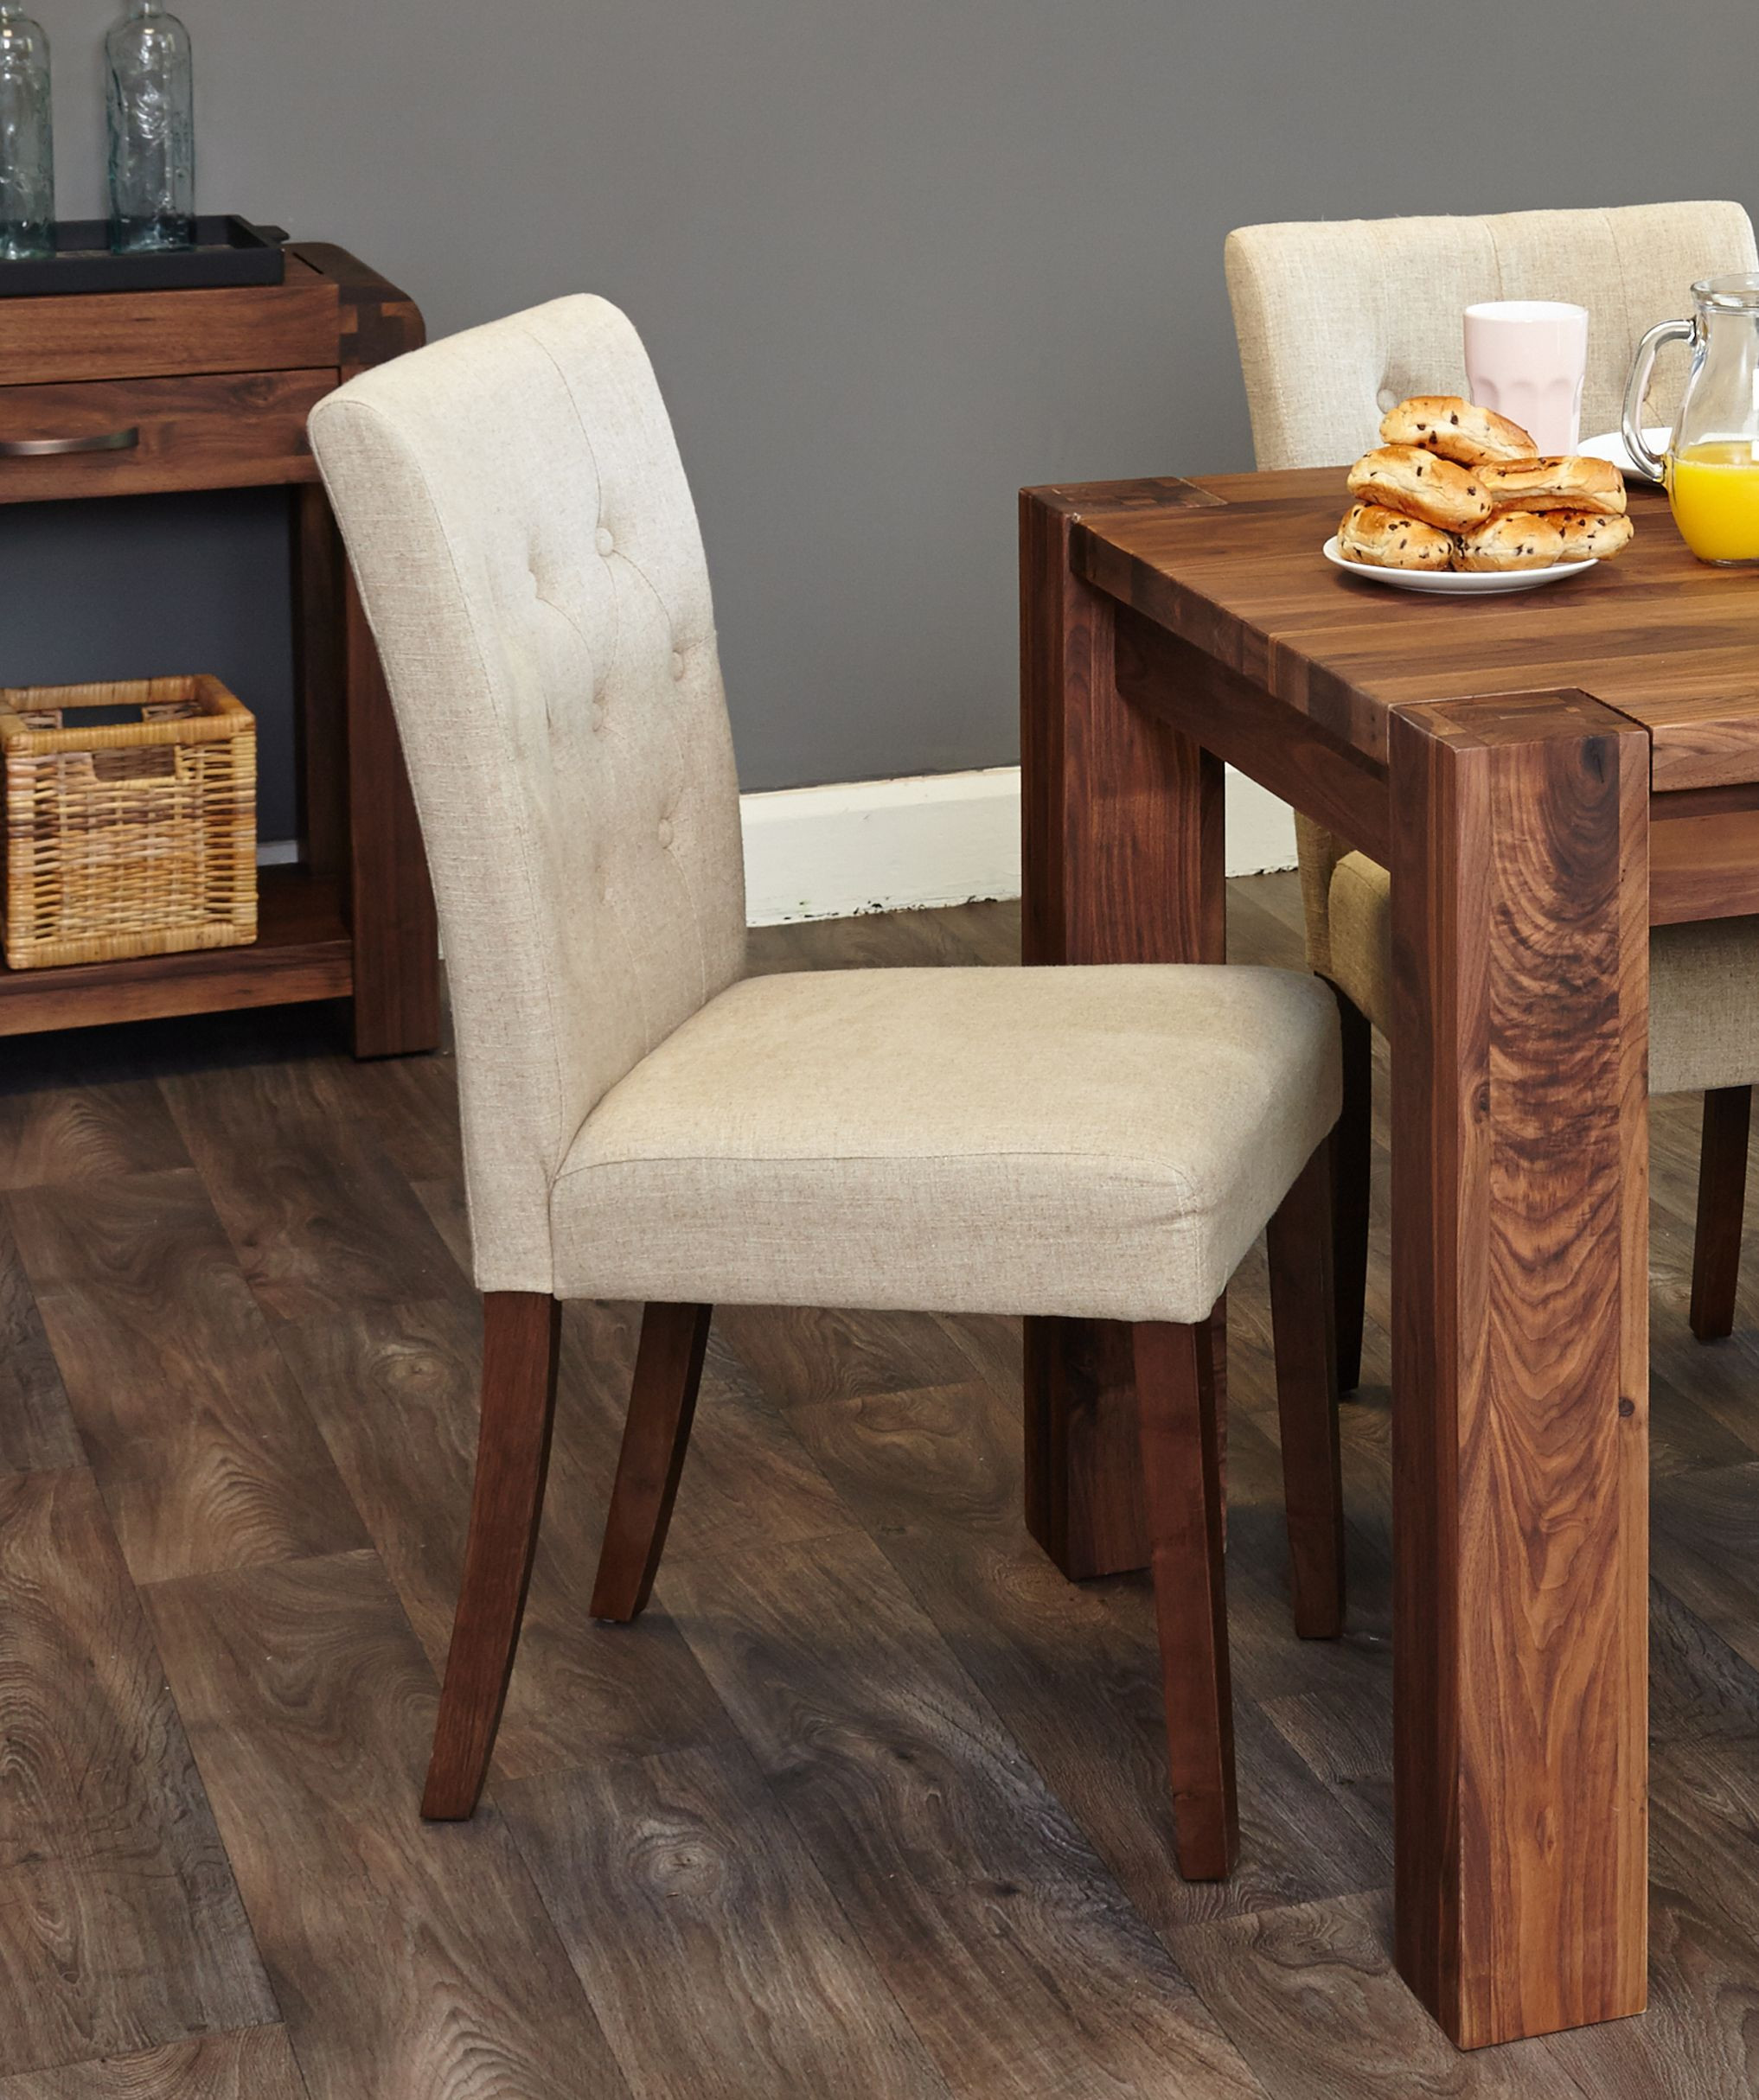 standard hardwood flooring sizes of a set of two elegant upholstered dining chairs in biscuit shade in a set of two elegant upholstered dining chairs in biscuit shade constructed using a solid hardwood frame and walnut legs upholstered in a luxurious